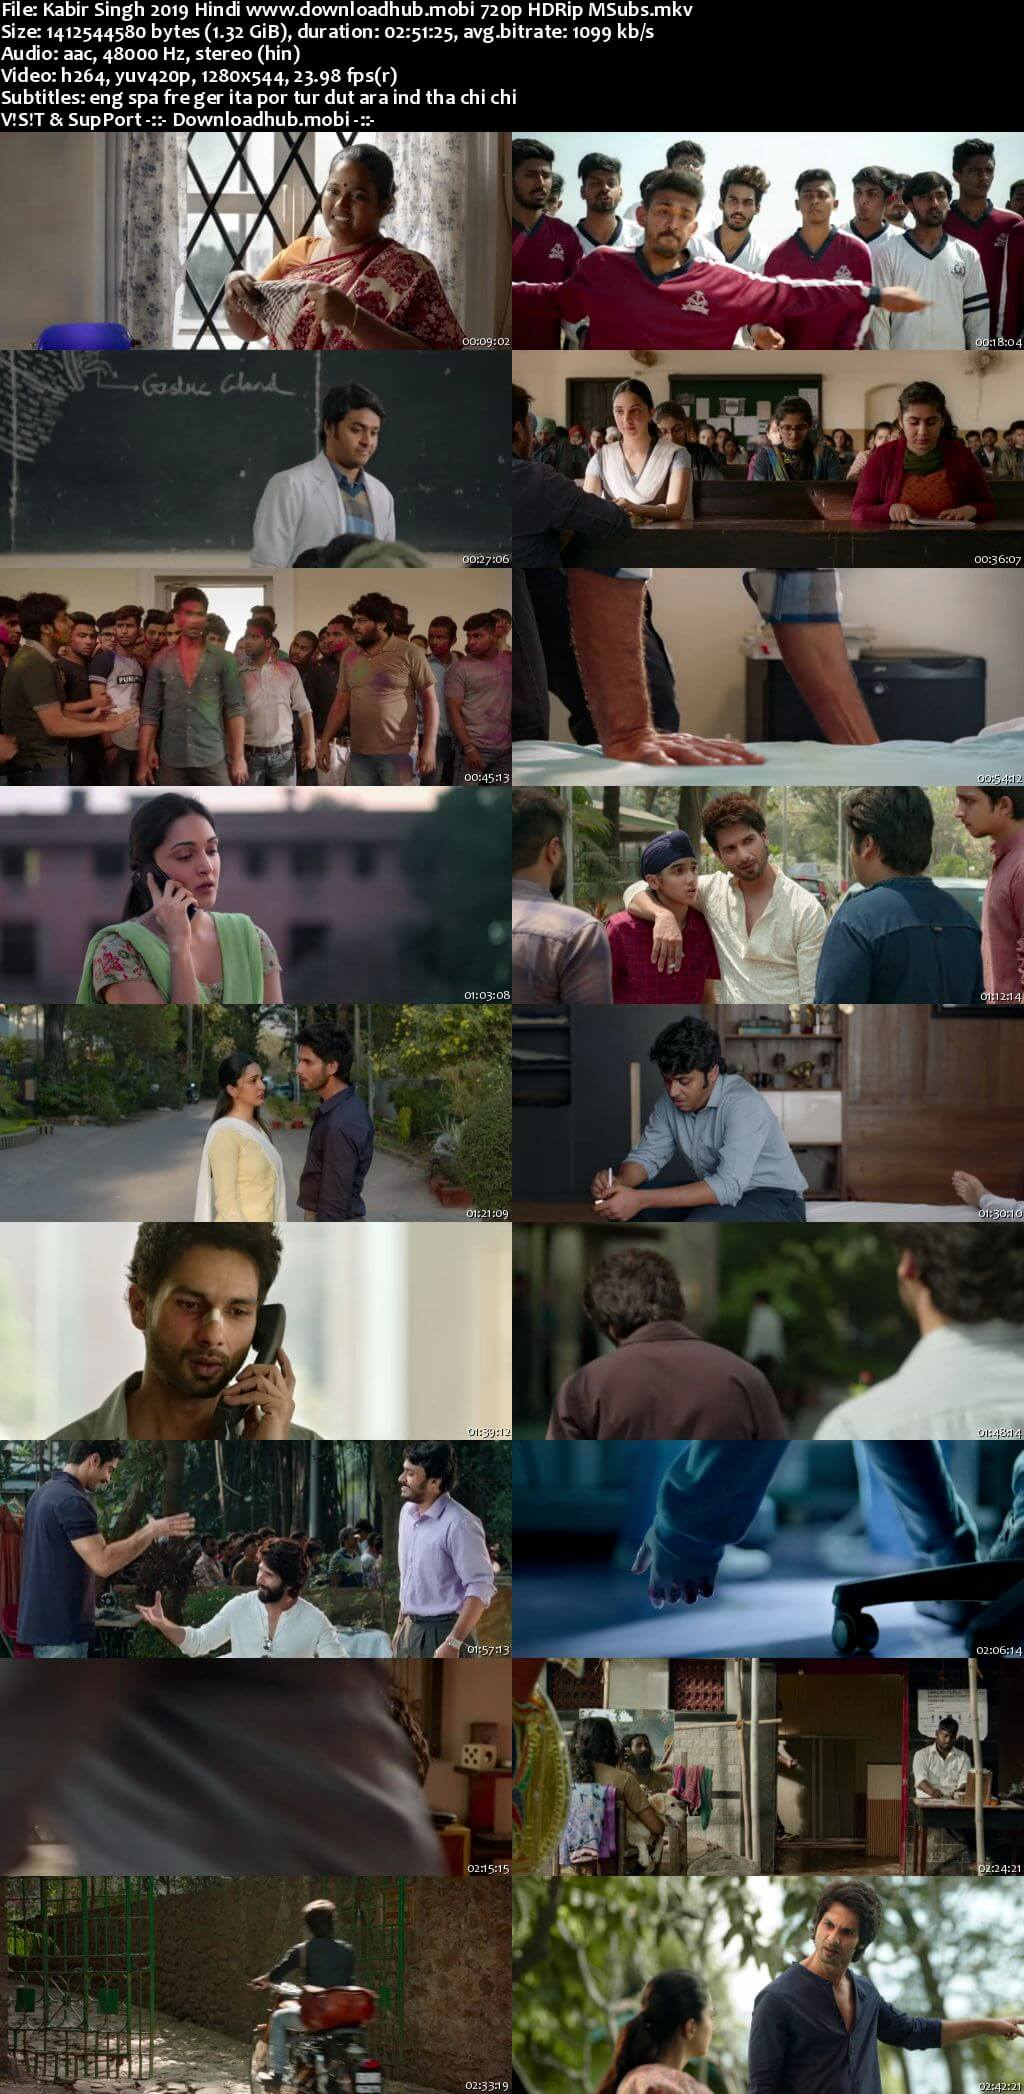 Kabir Singh 2019 Hindi 720p HDRip MSubs